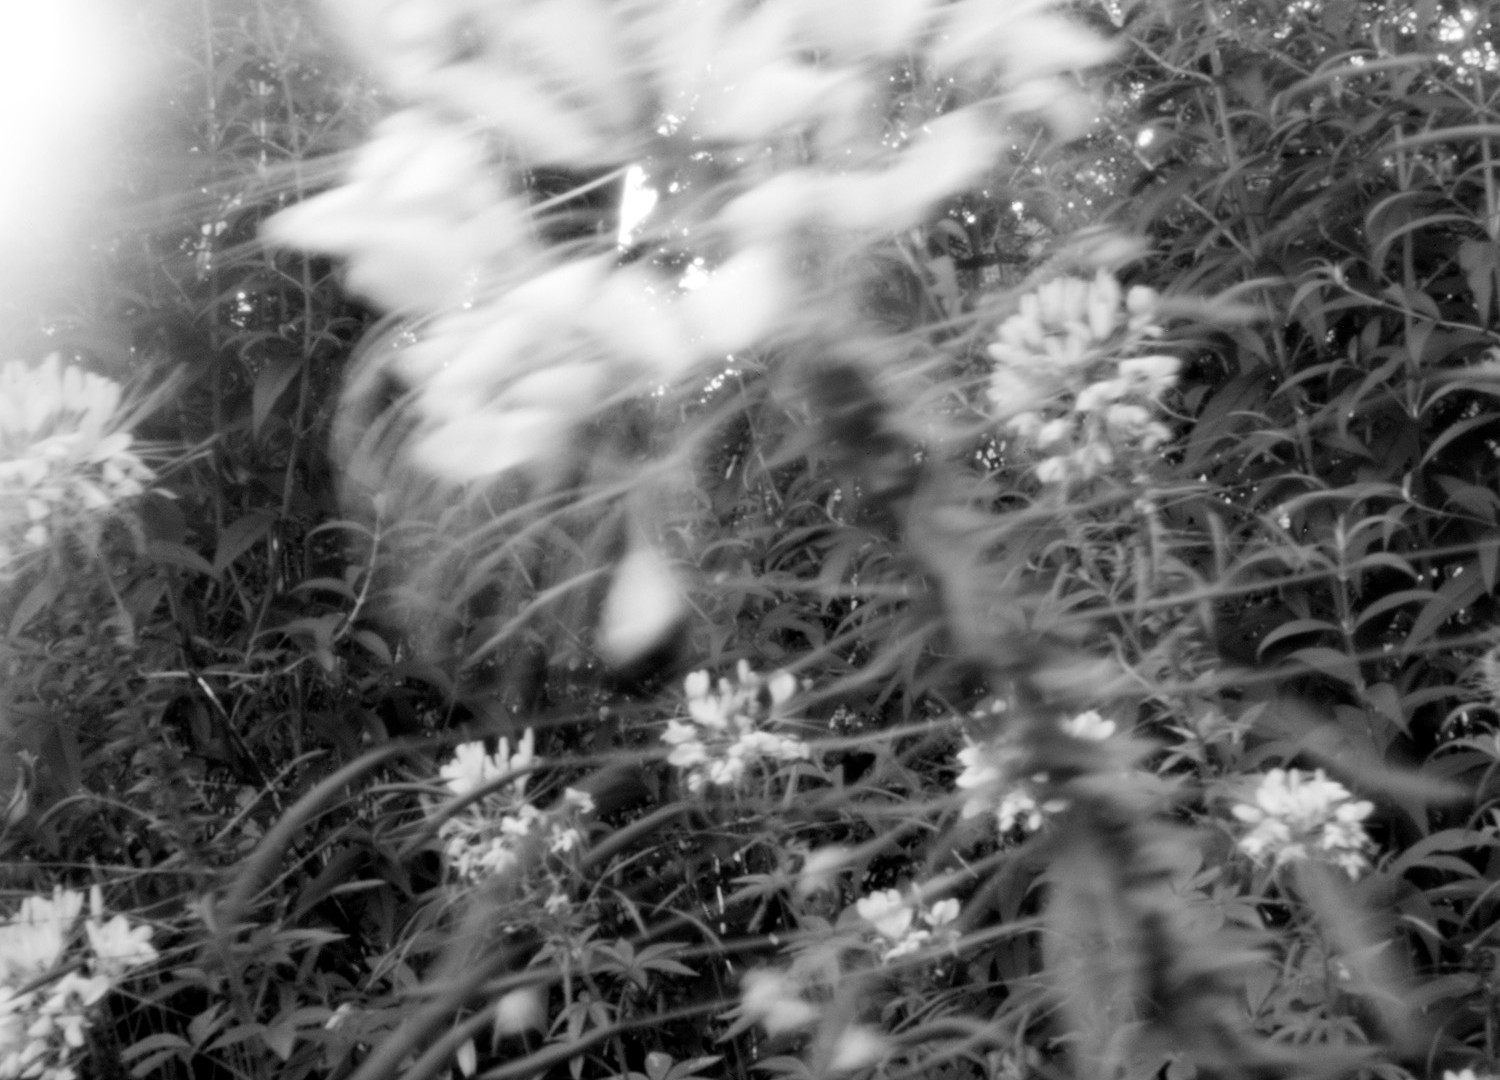 Jocelyn Lee, Untitled pinhole (phlox in your garden during the last hour of your life, July 11, 2008, 5:00 to 6:50 a.m.), 2008